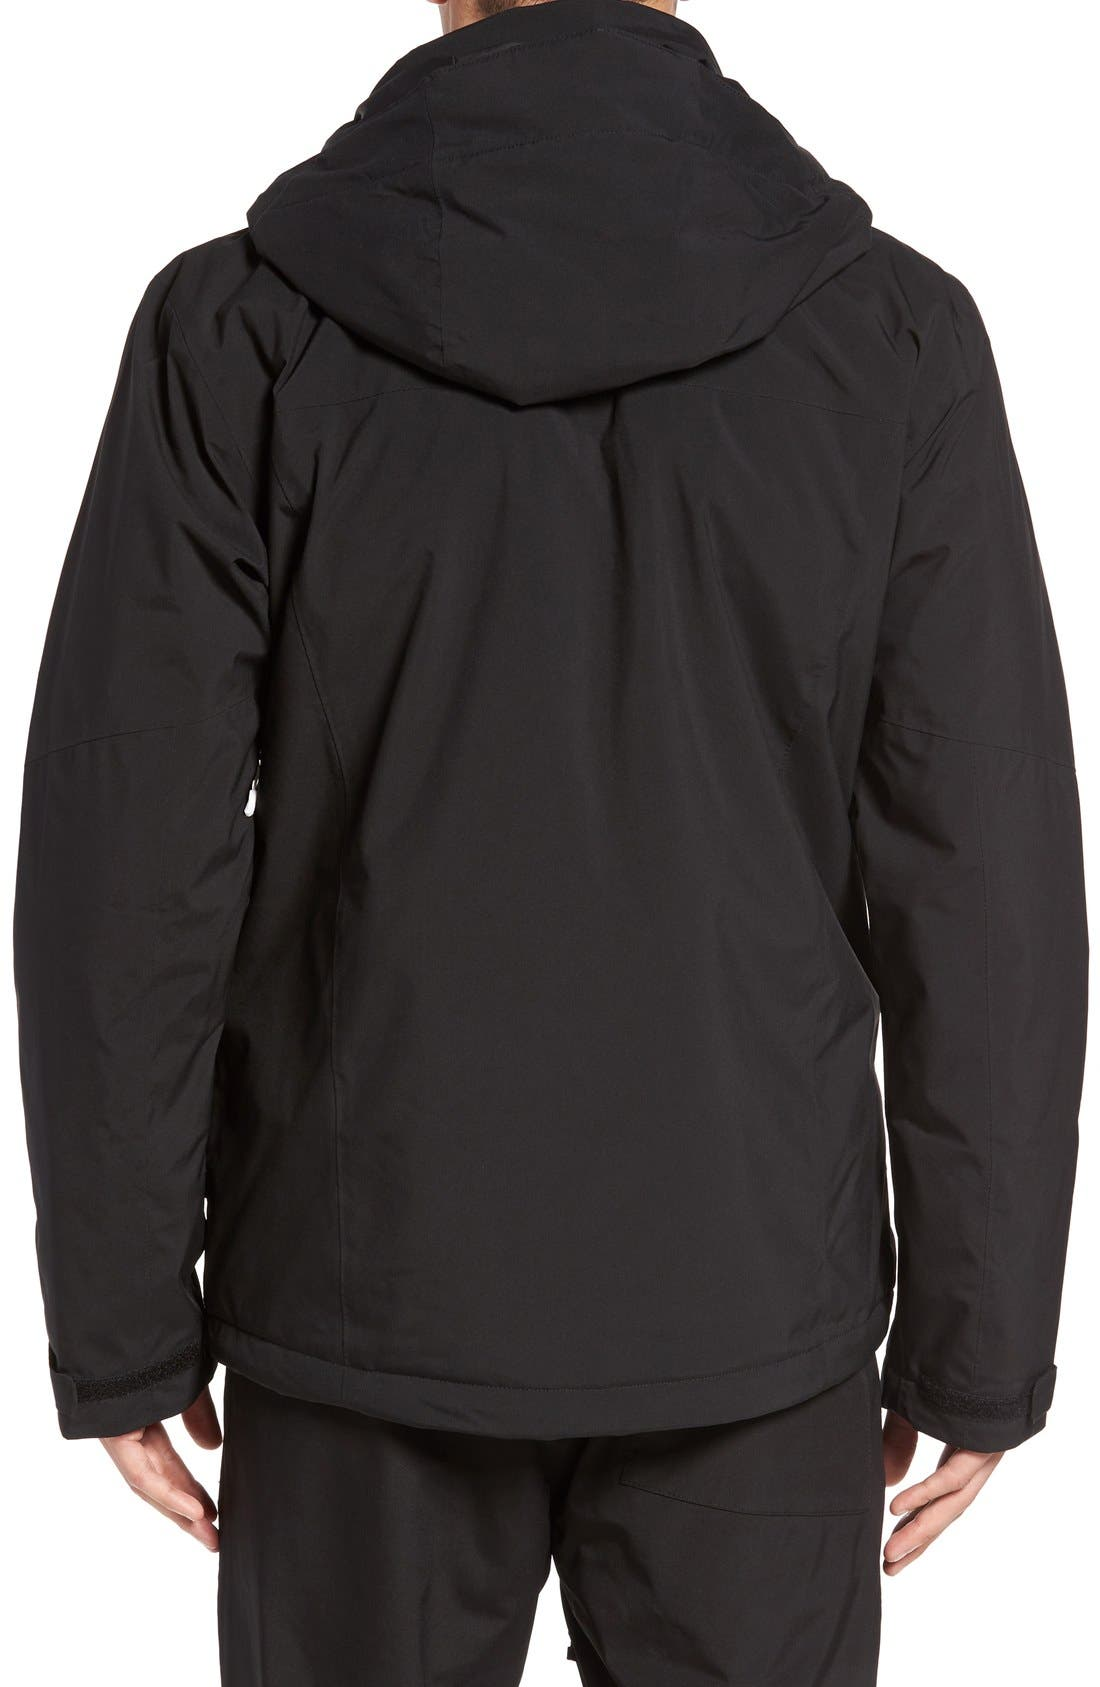 'Vista' Insulated Water Repellent Ski Parka,                             Alternate thumbnail 2, color,                             Black